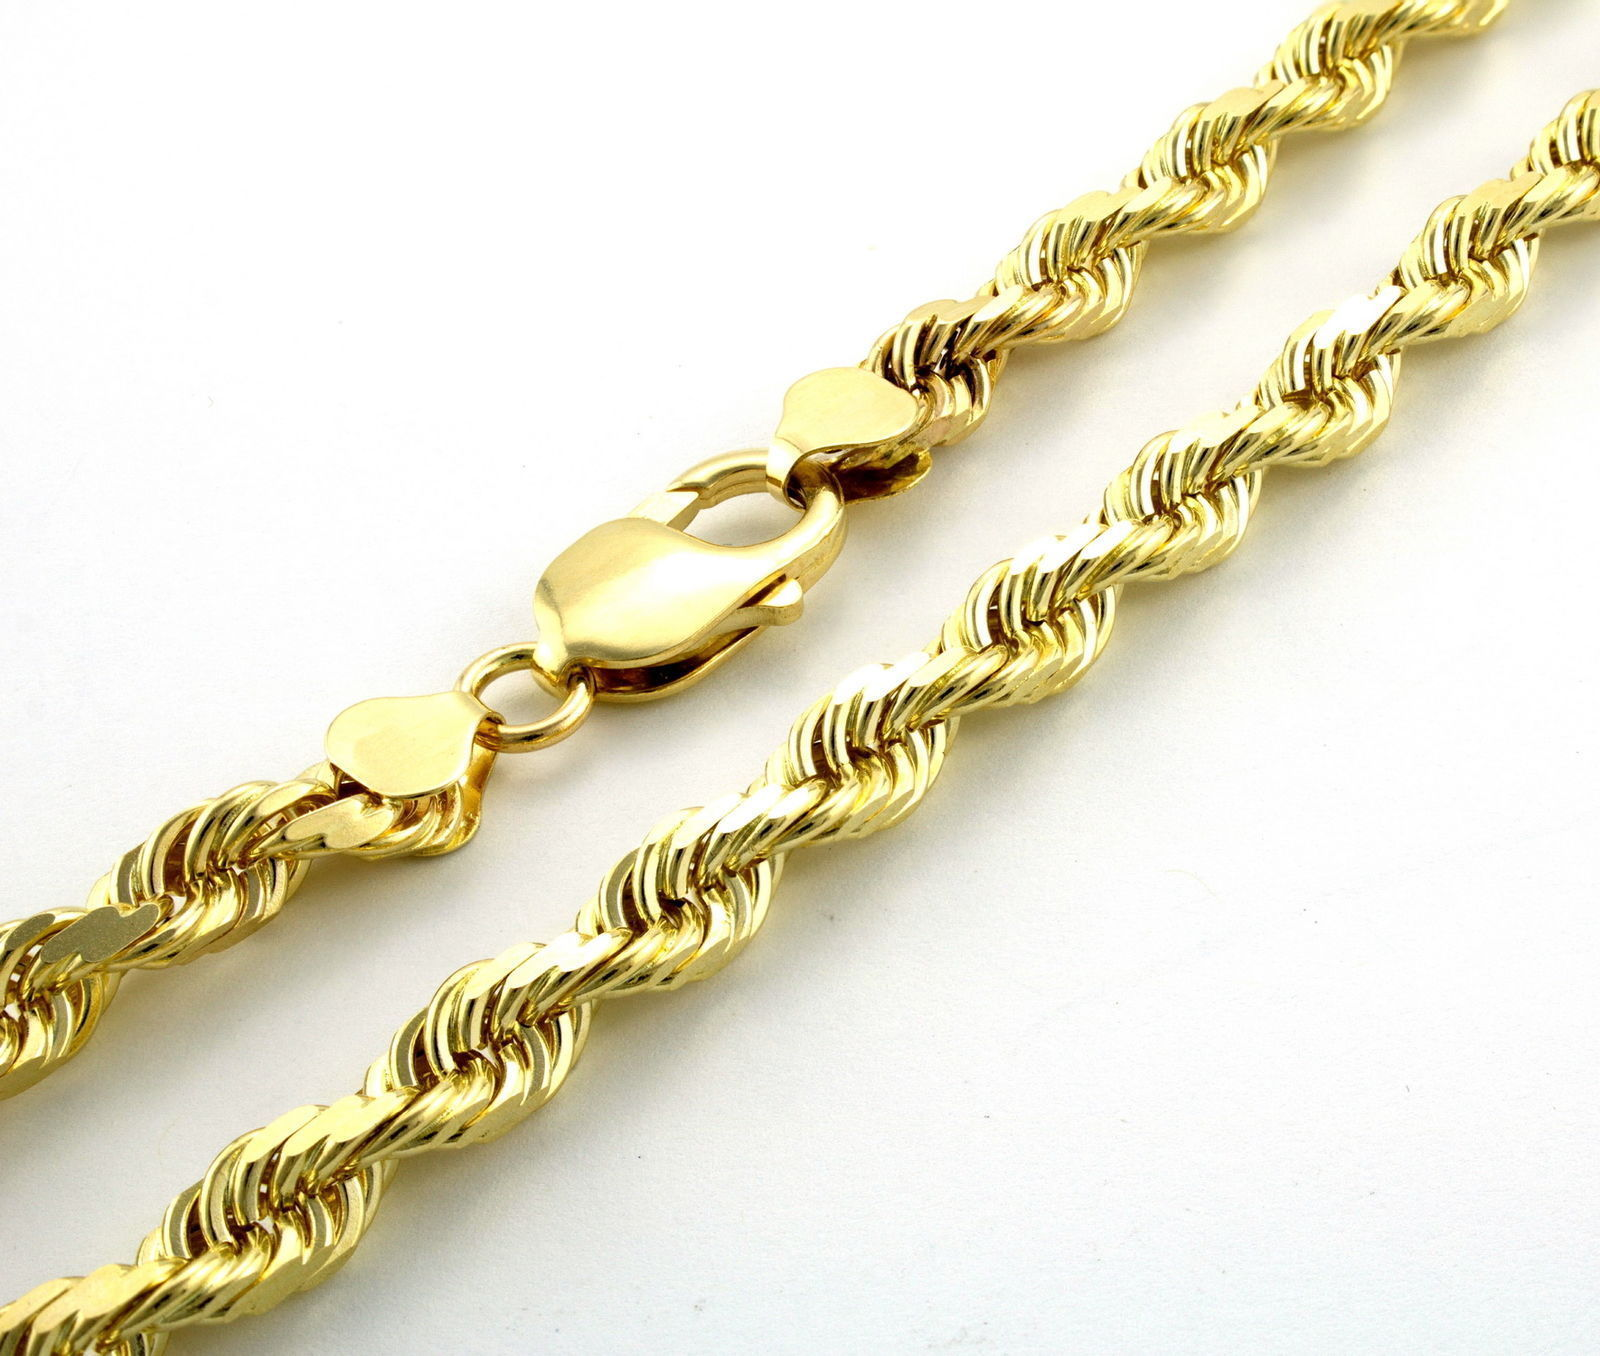 14K Yellow Gold 5mm Rope Link Chain Necklace 20""